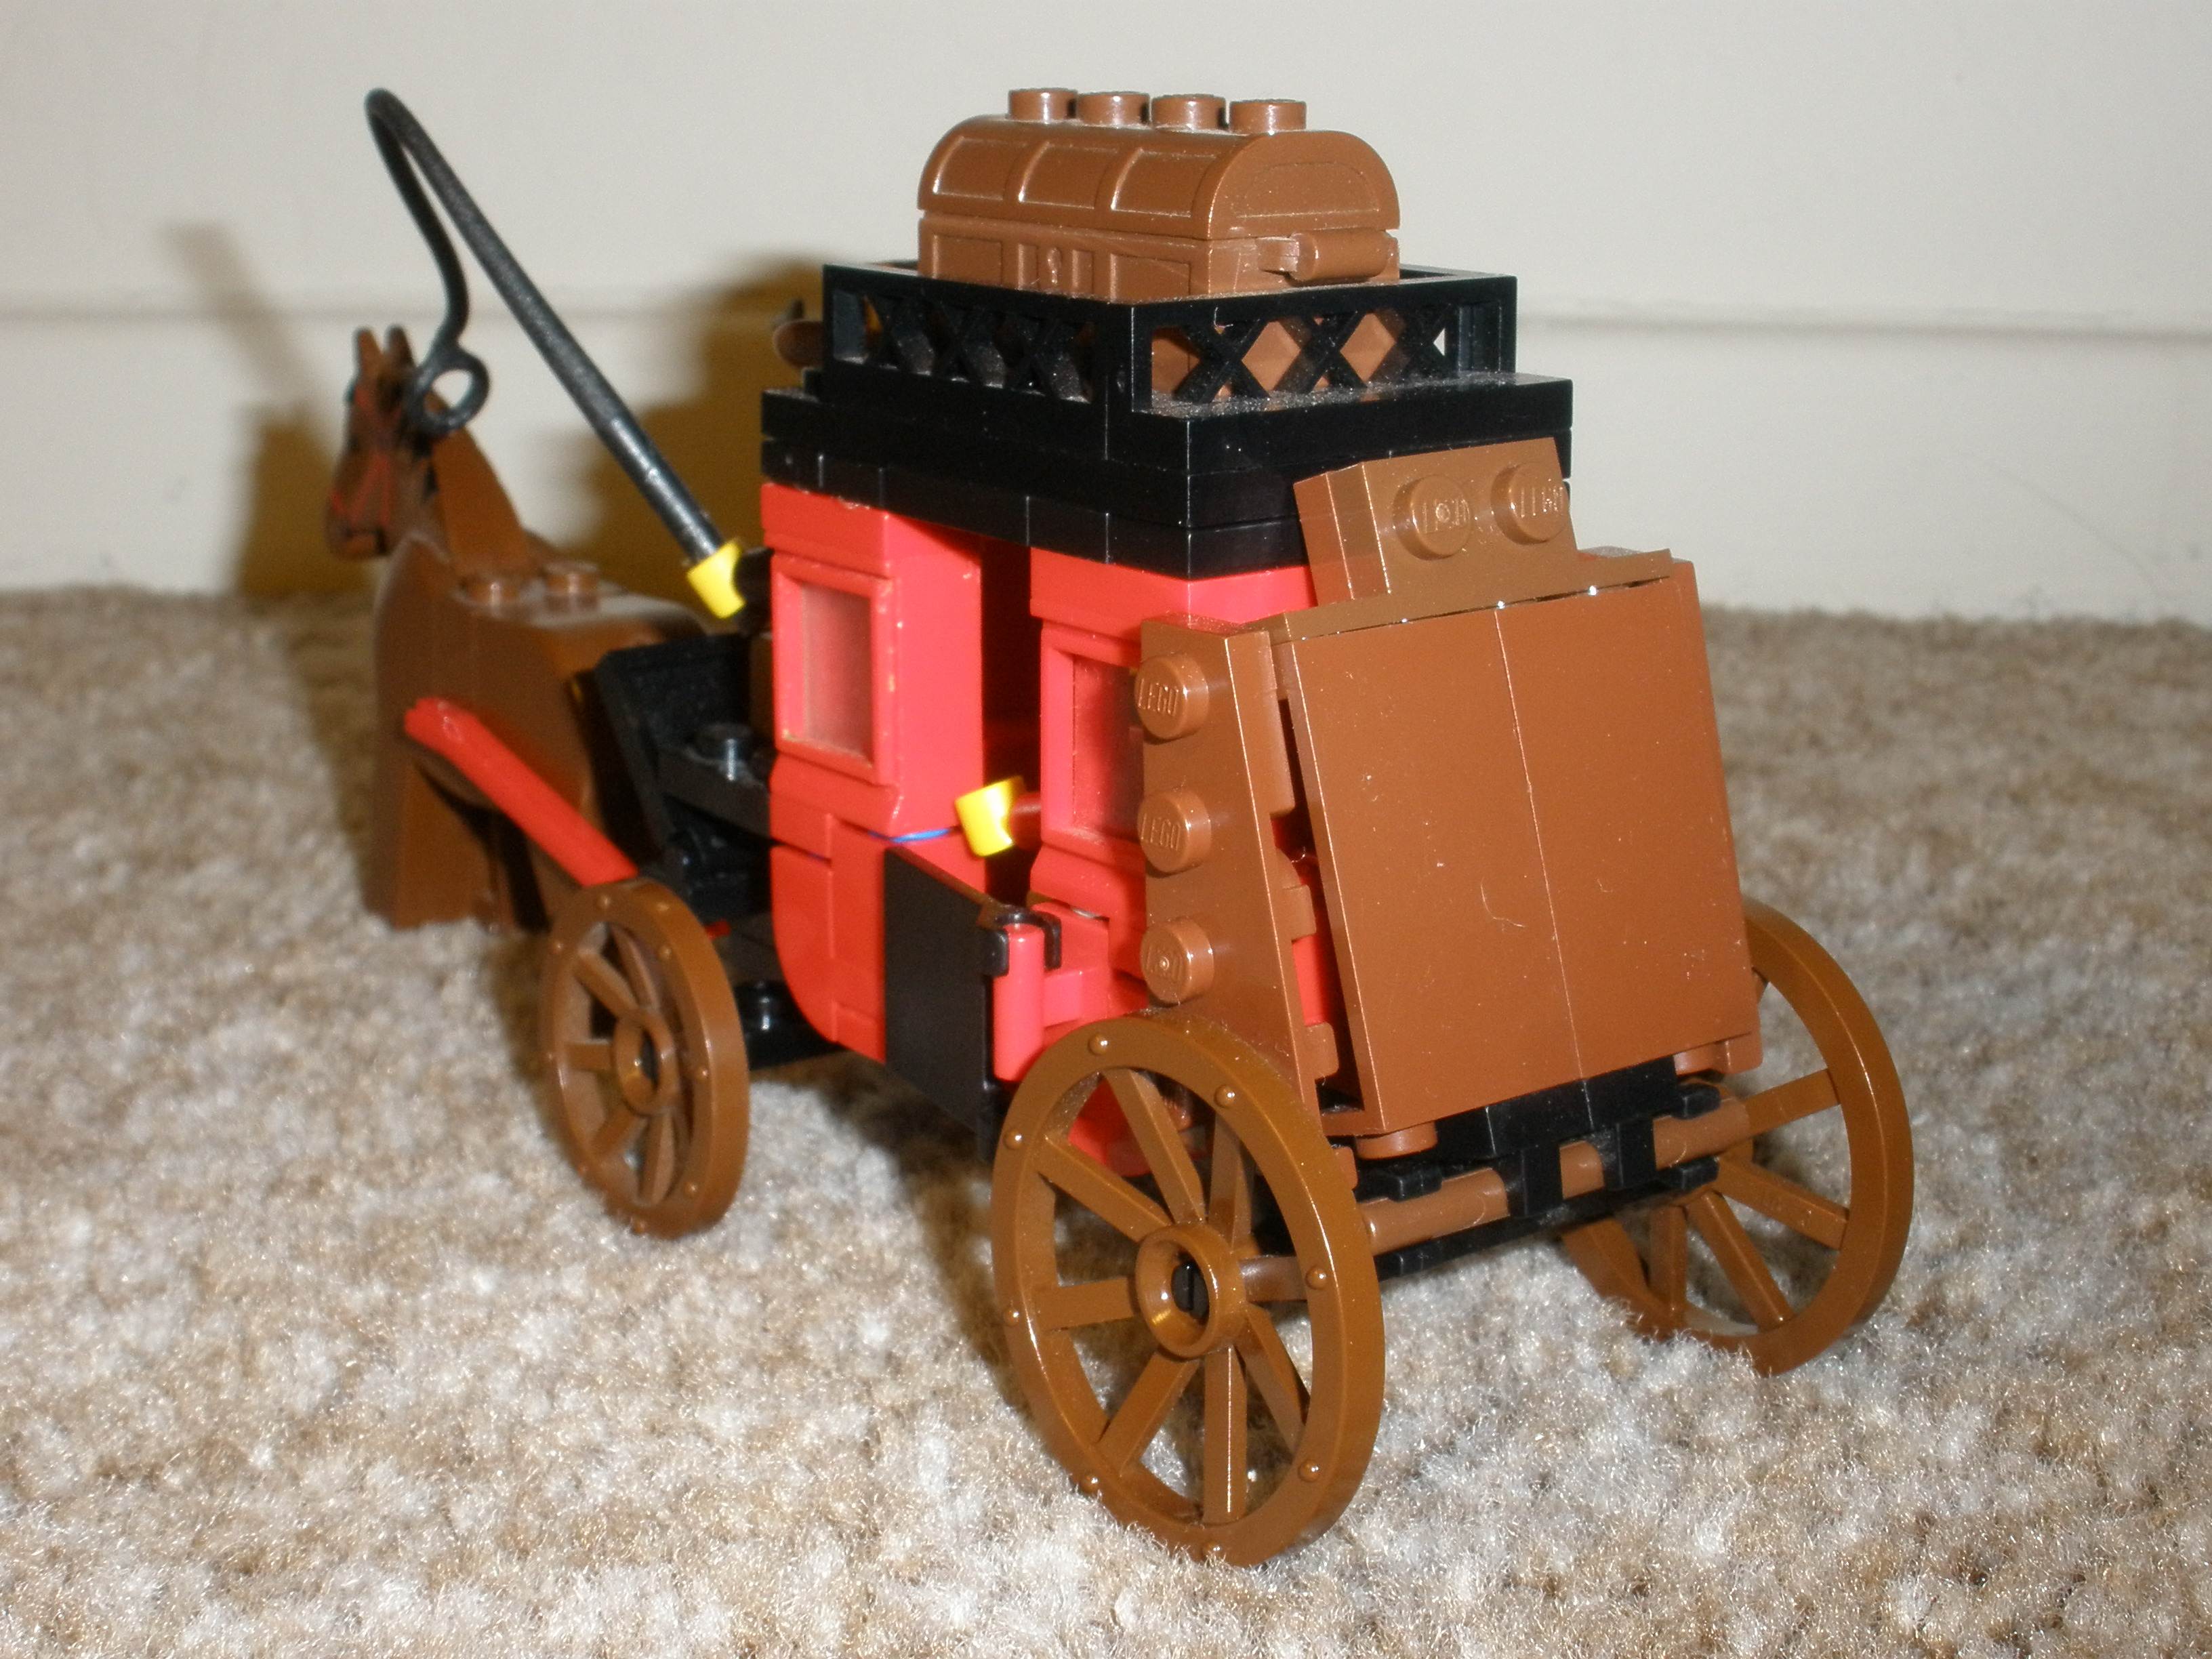 lego_picts_012.jpg